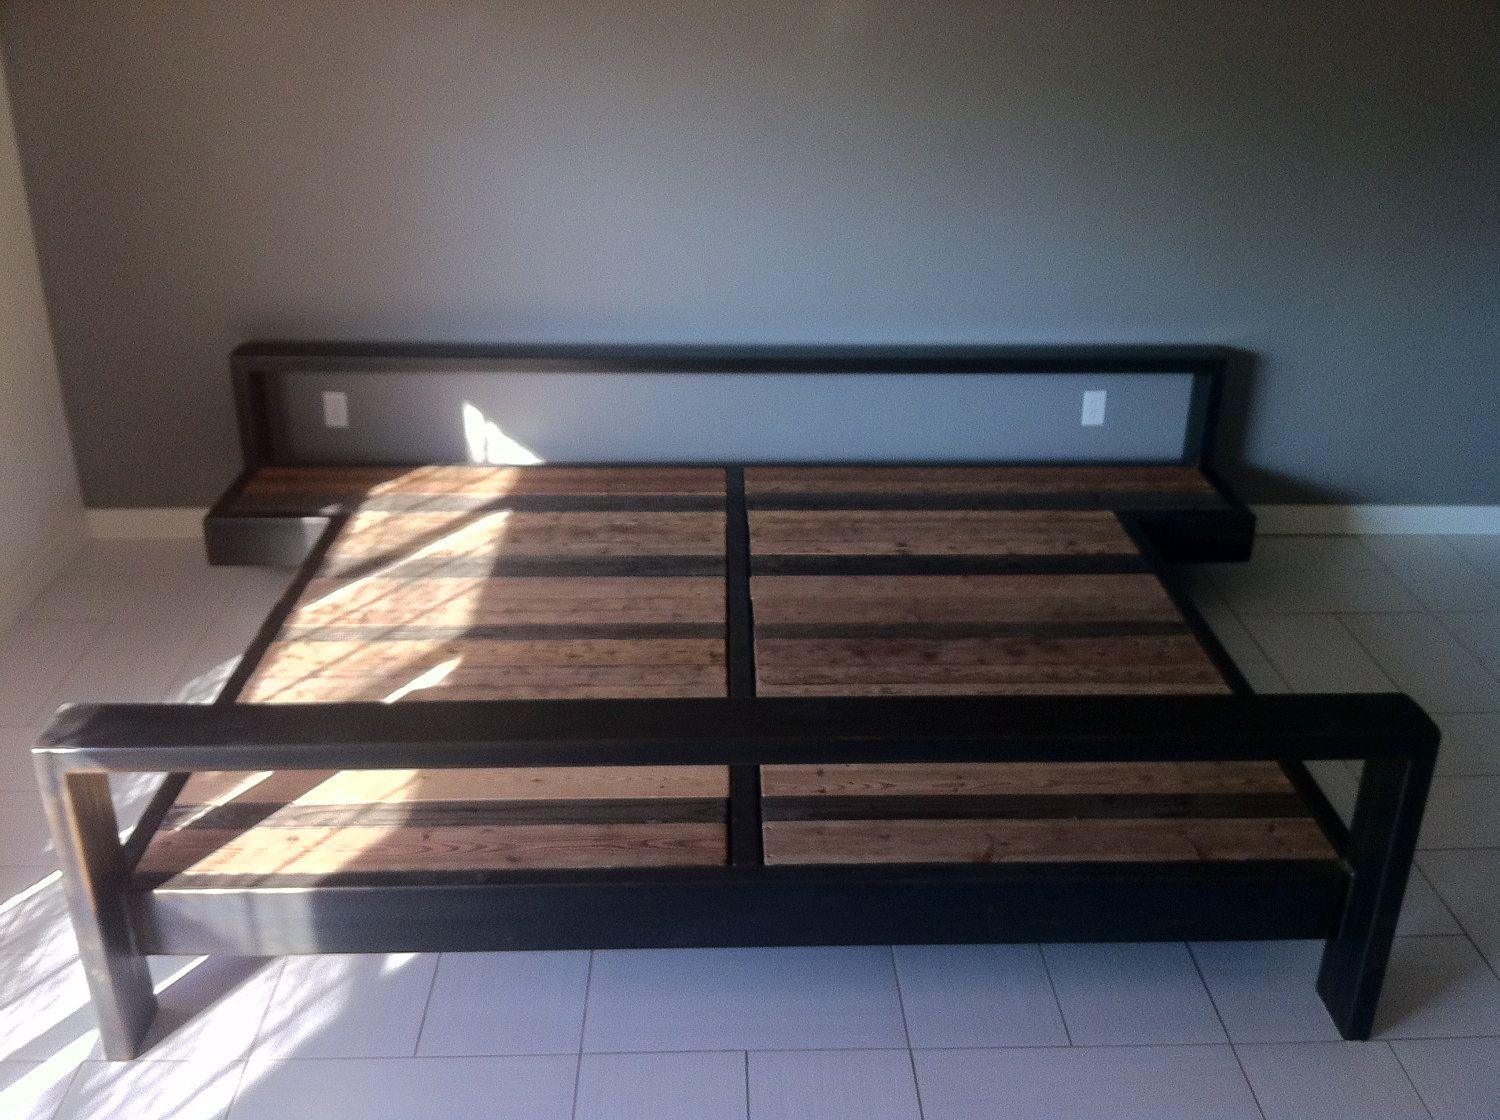 Pin by jrt on morf pinterest bed frames metals and industrial